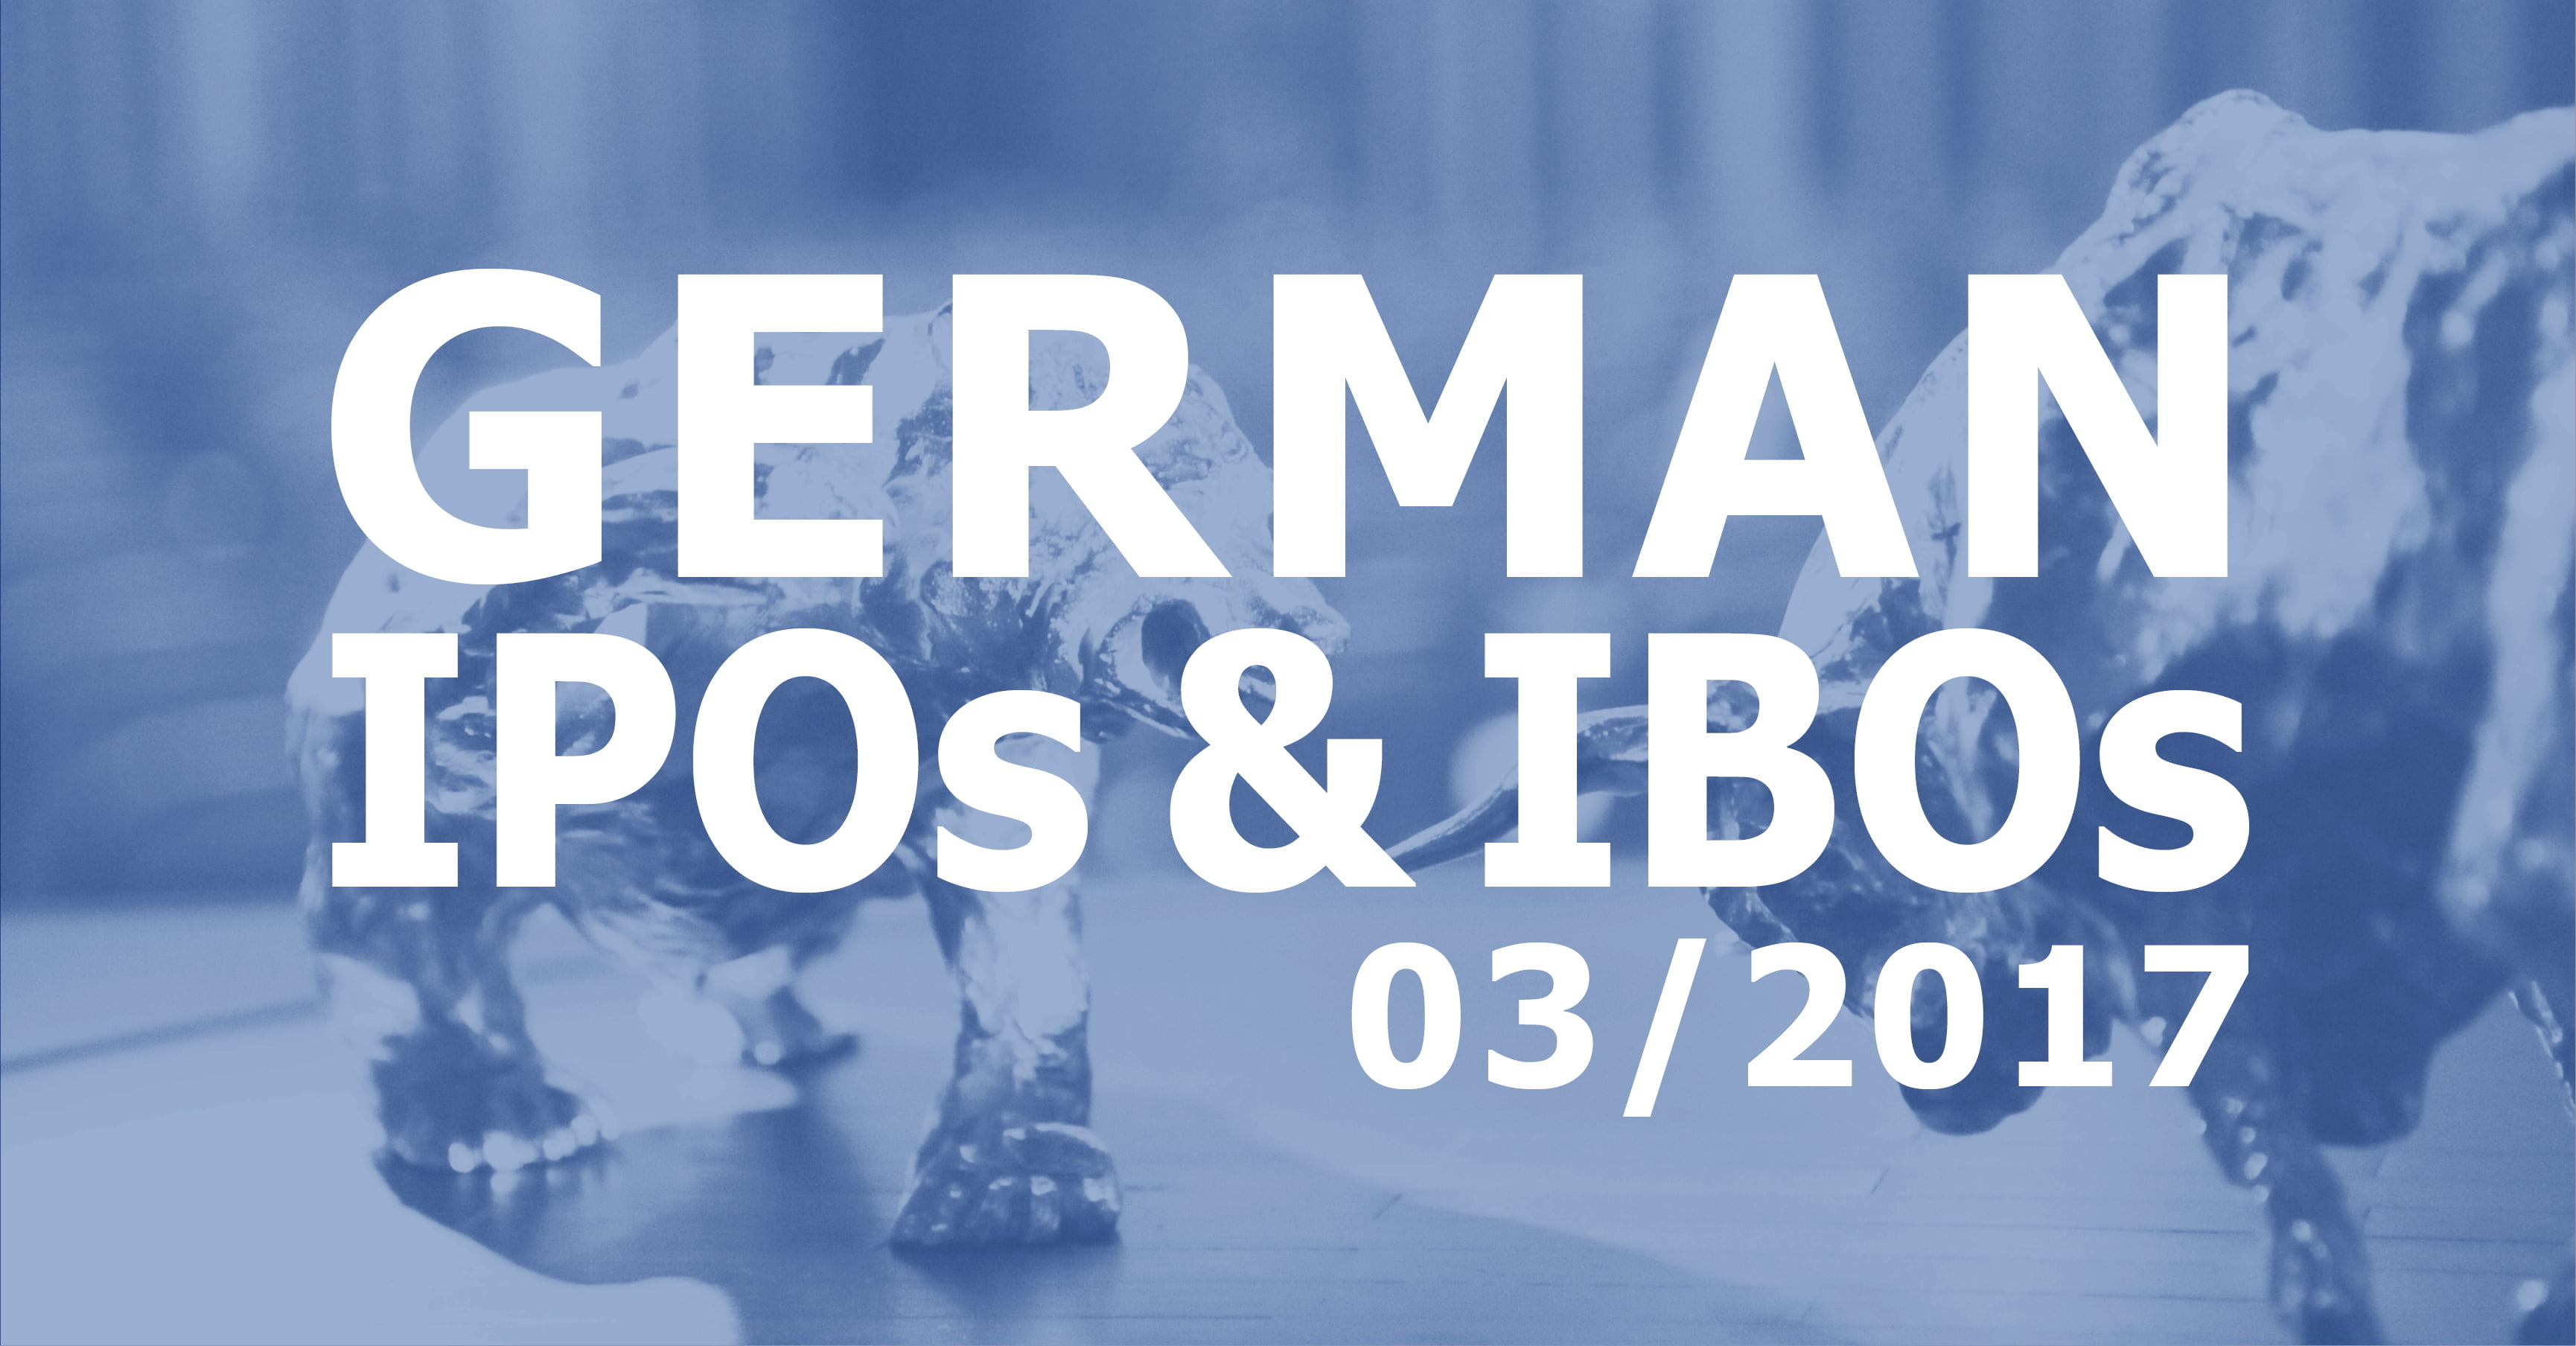 German IPOs and IBOs 03/2017